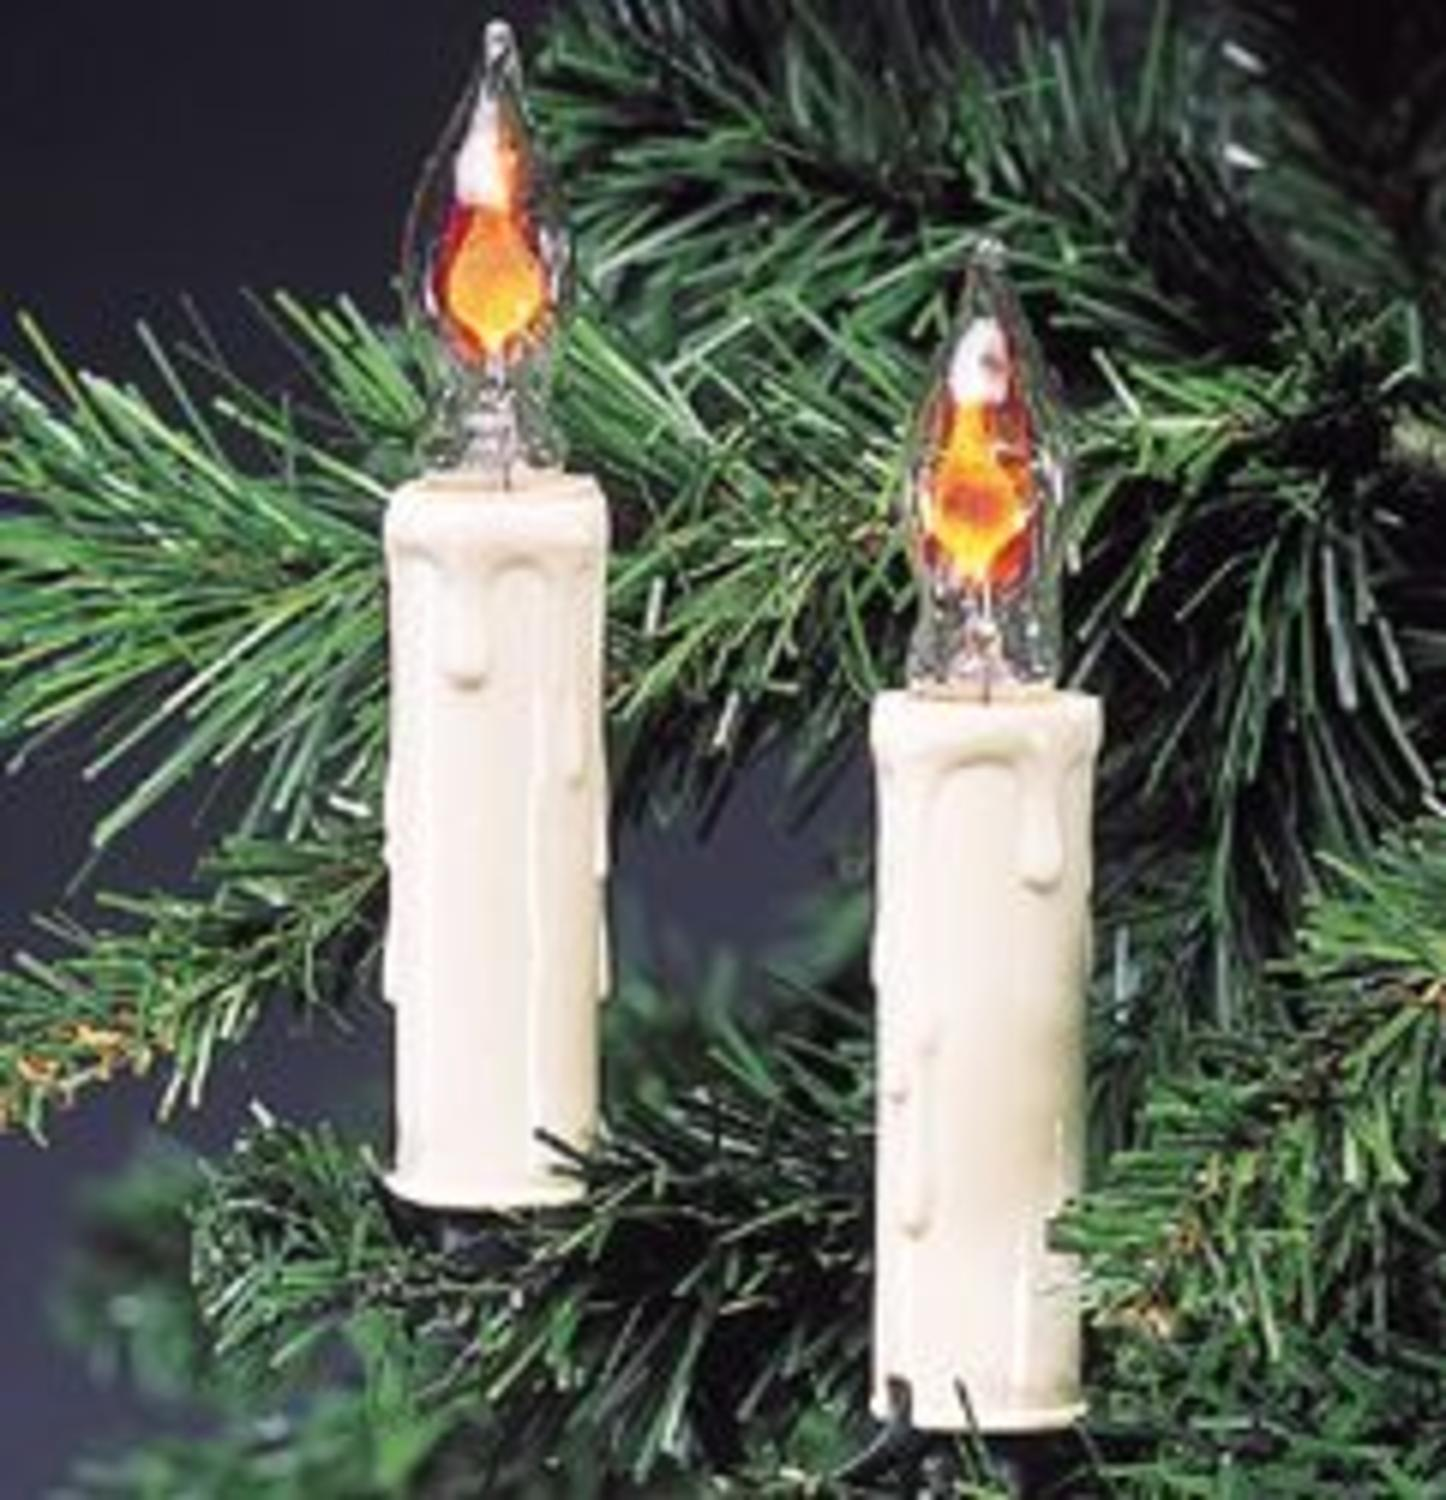 Set of 7 White Flicker Flame Candle Novelty Christmas Lights - Green Wire